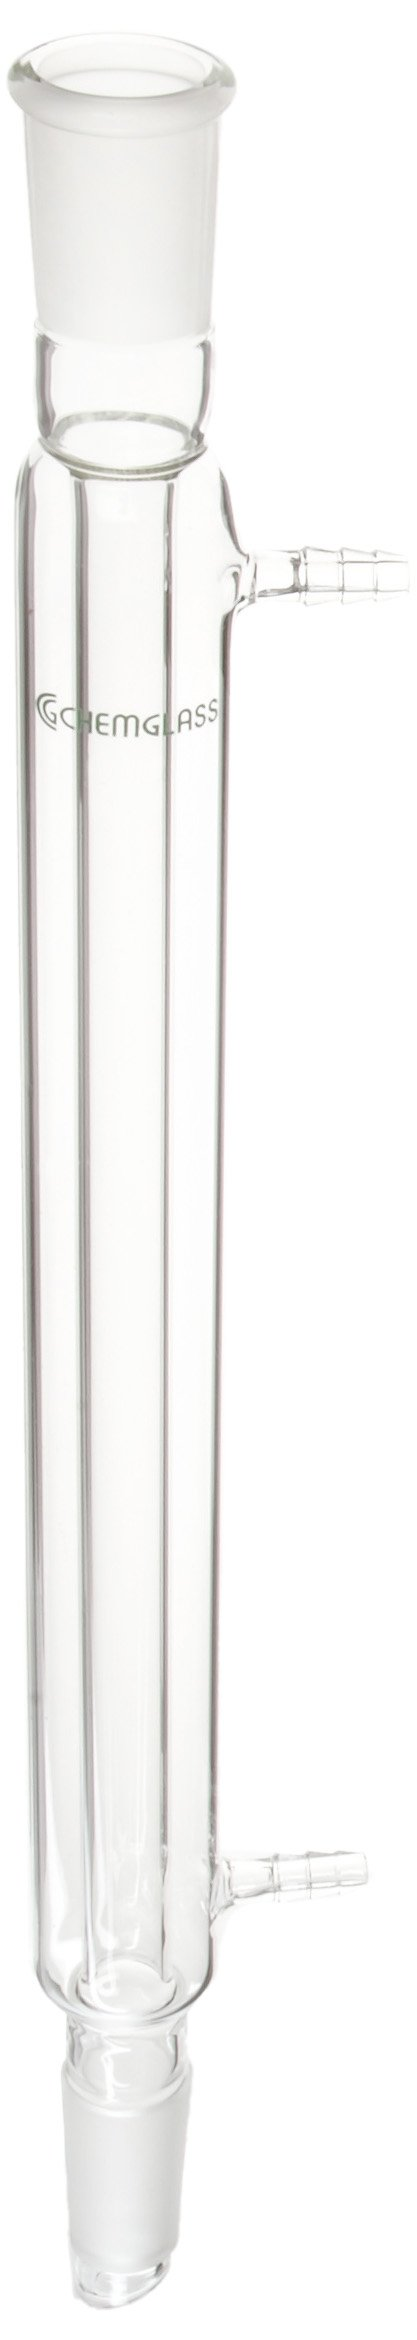 Chemglass CG-1218-05 Glass Liebig Condenser, 300mm Jacket Length, 420mm Height, 24/40 Joint by Chemglass